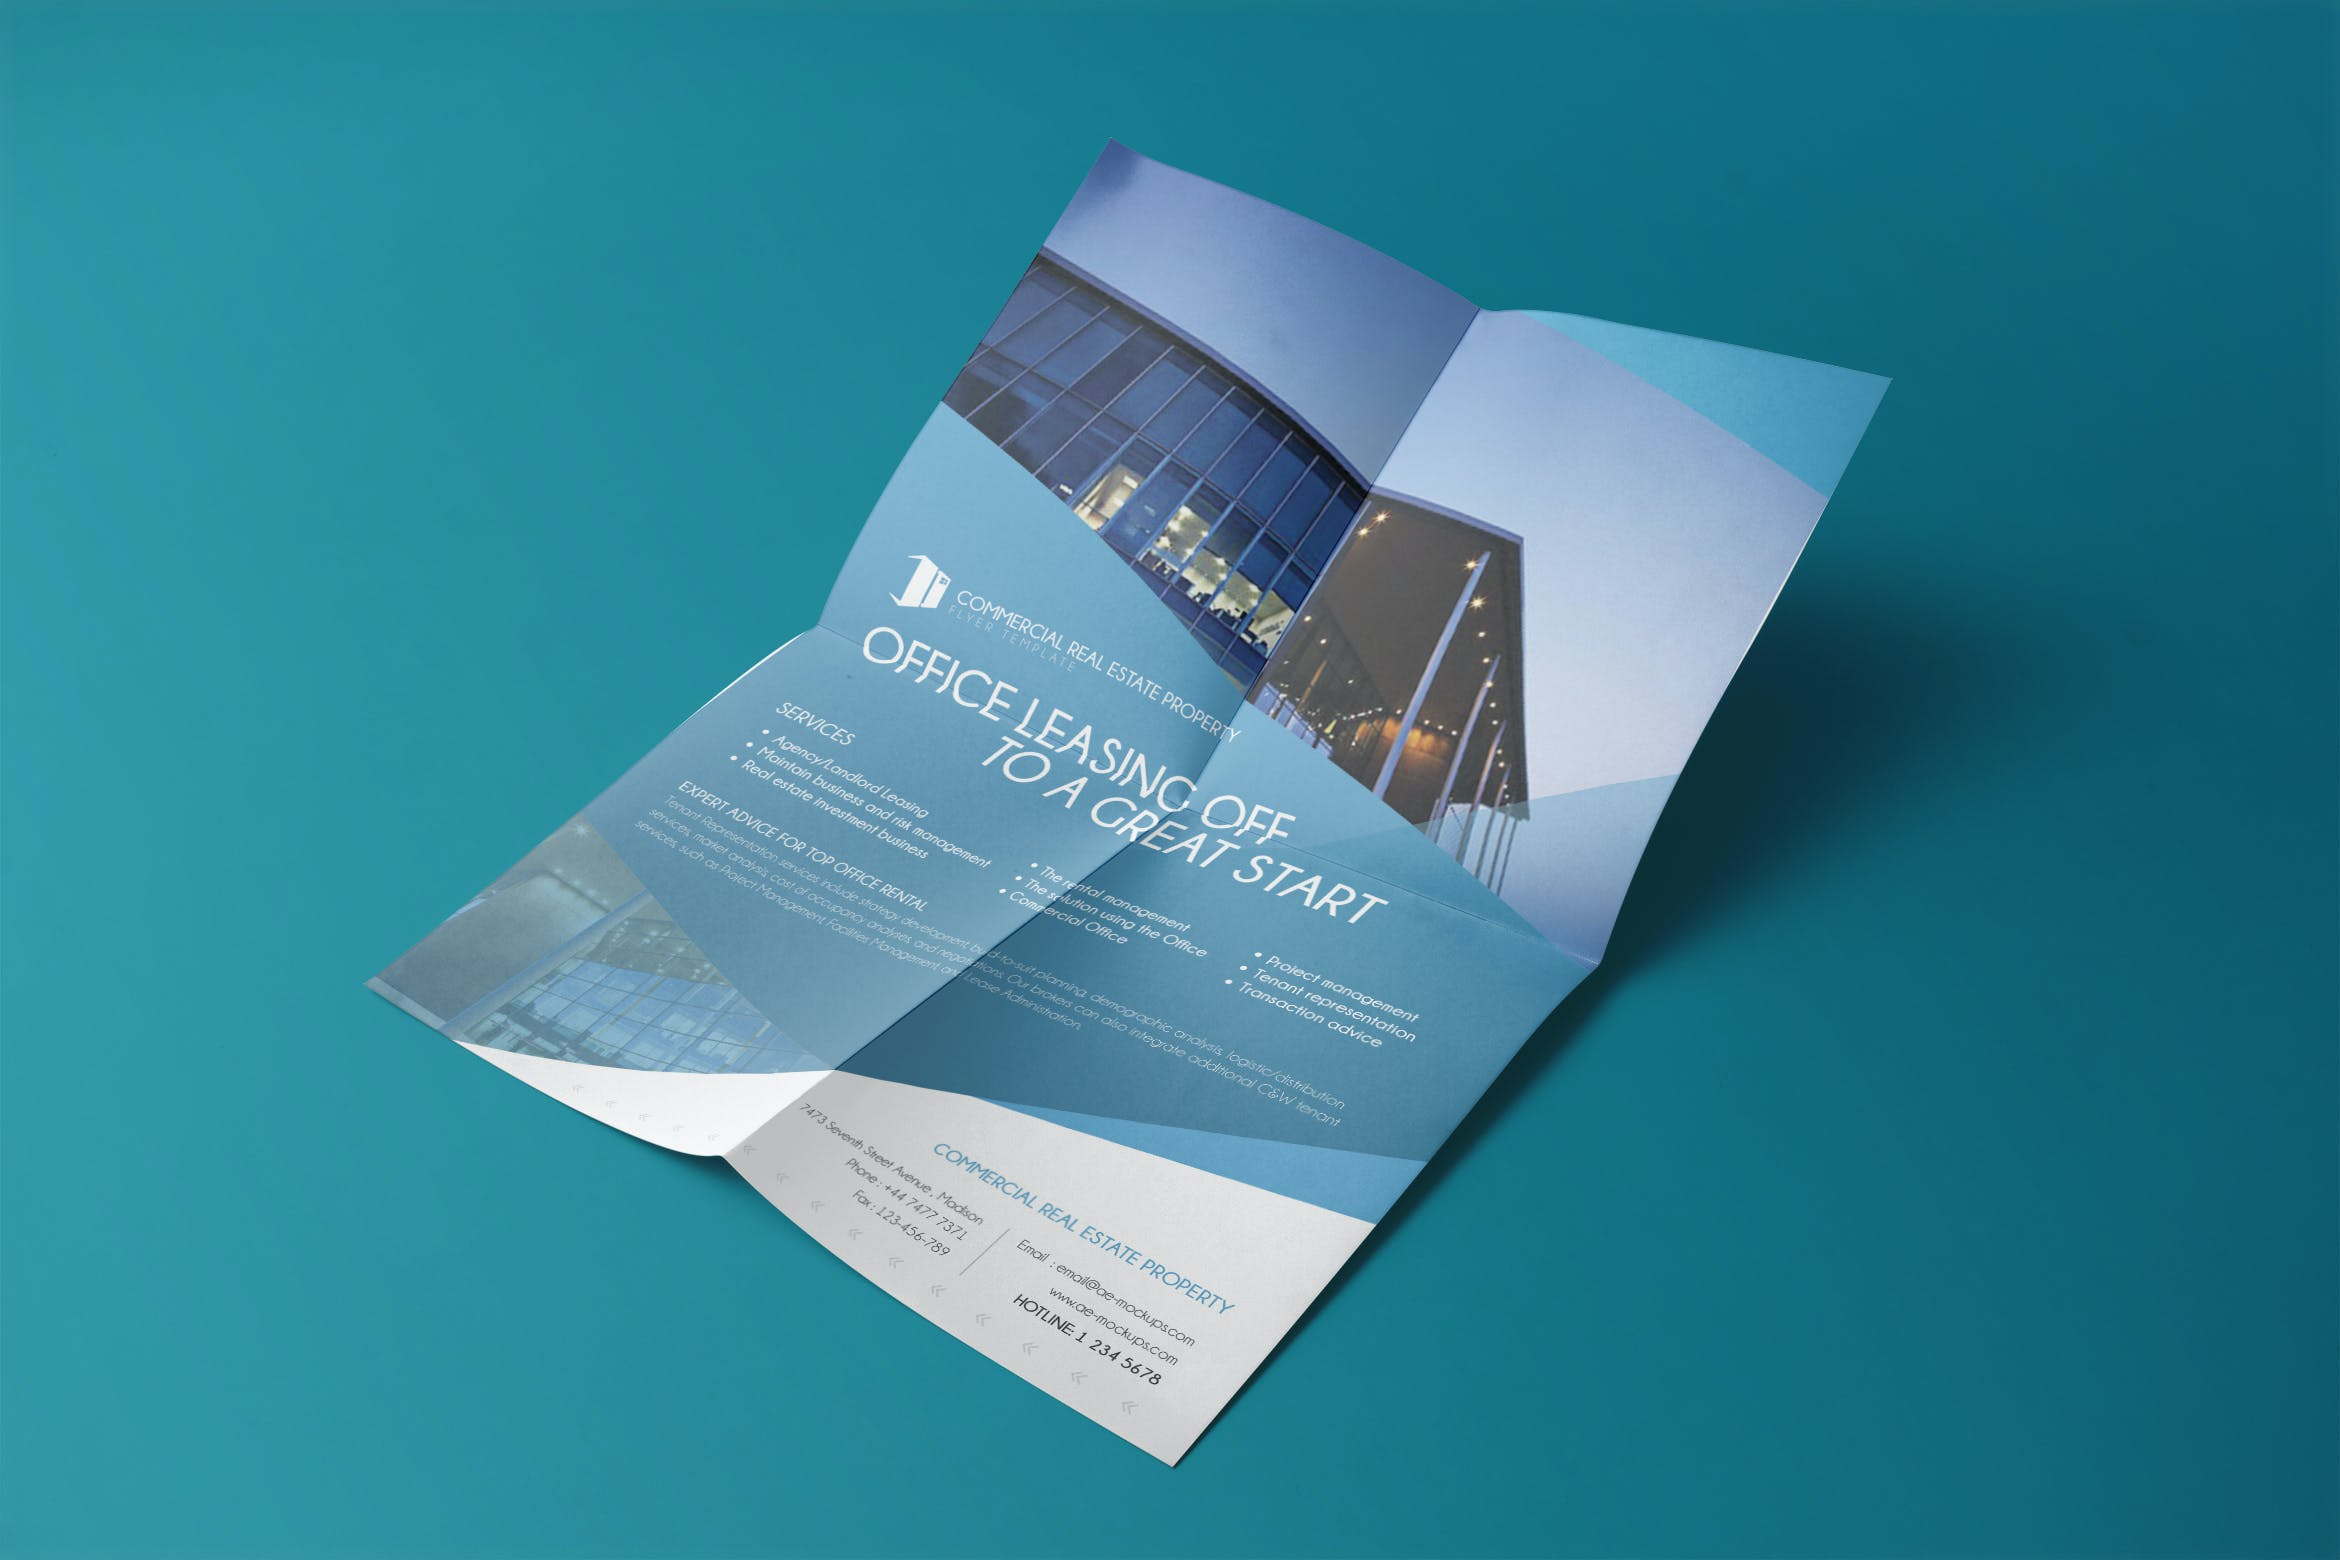 Commercial Real Estate Property Flyer Template01 By Wutip On Envato Elements